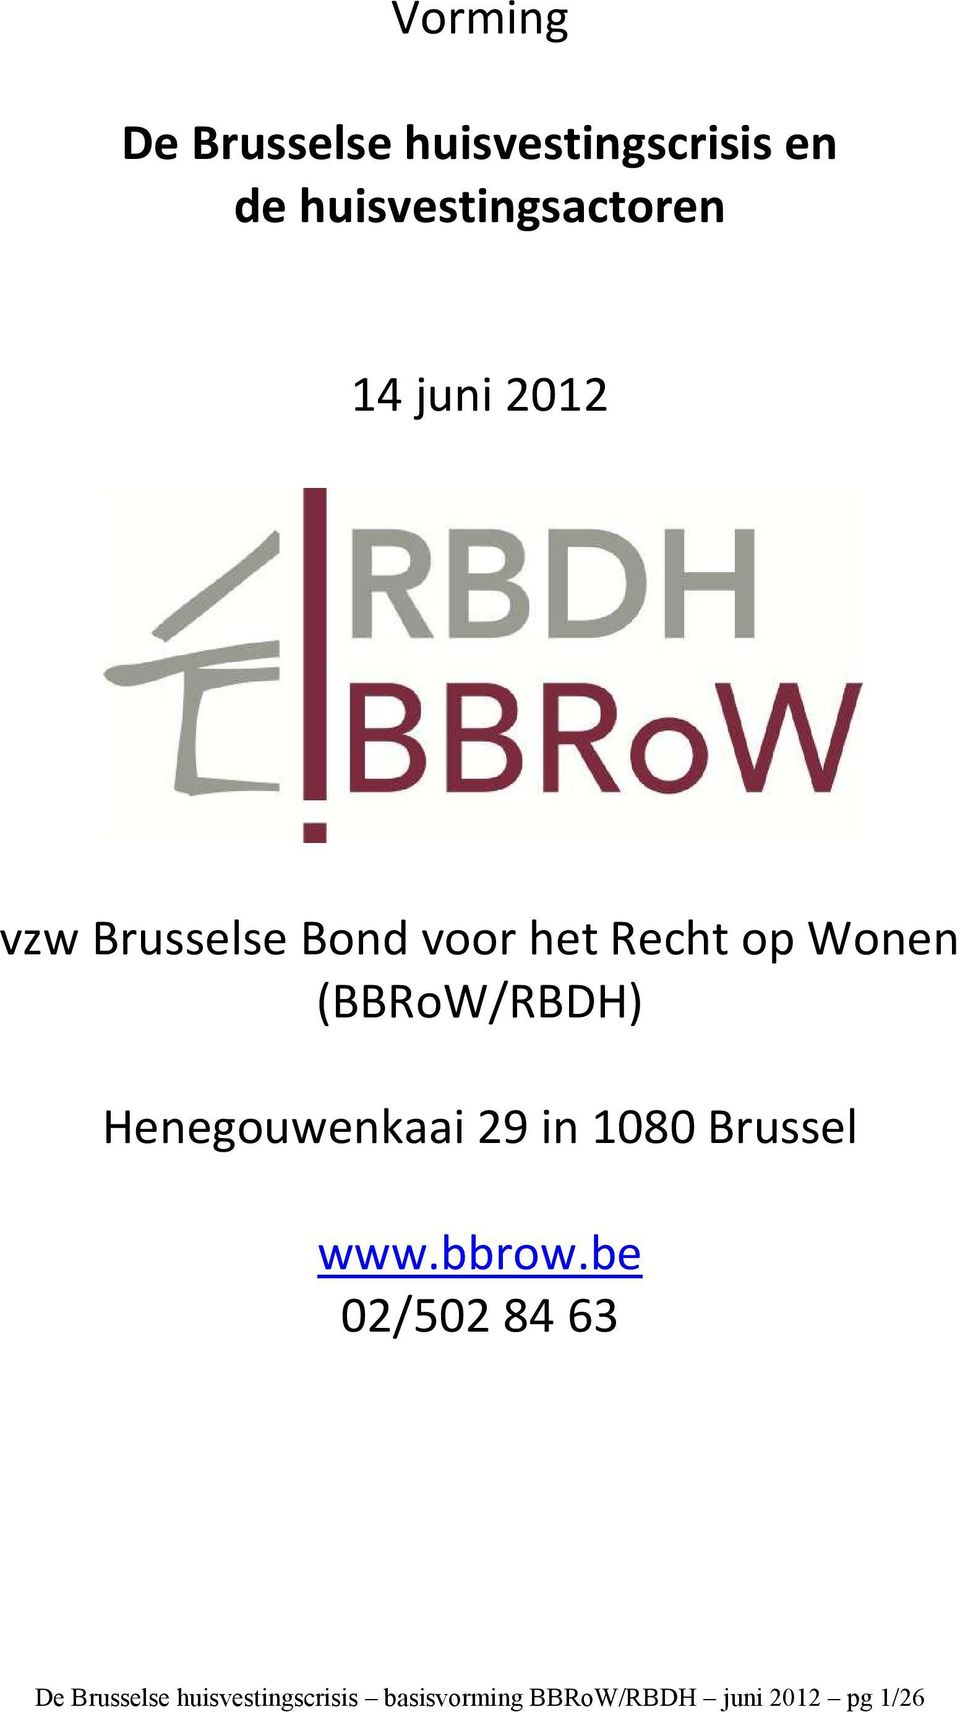 (BBRoW/RBDH) Henegouwenkaai 29 in 1080 Brussel www.bbrow.